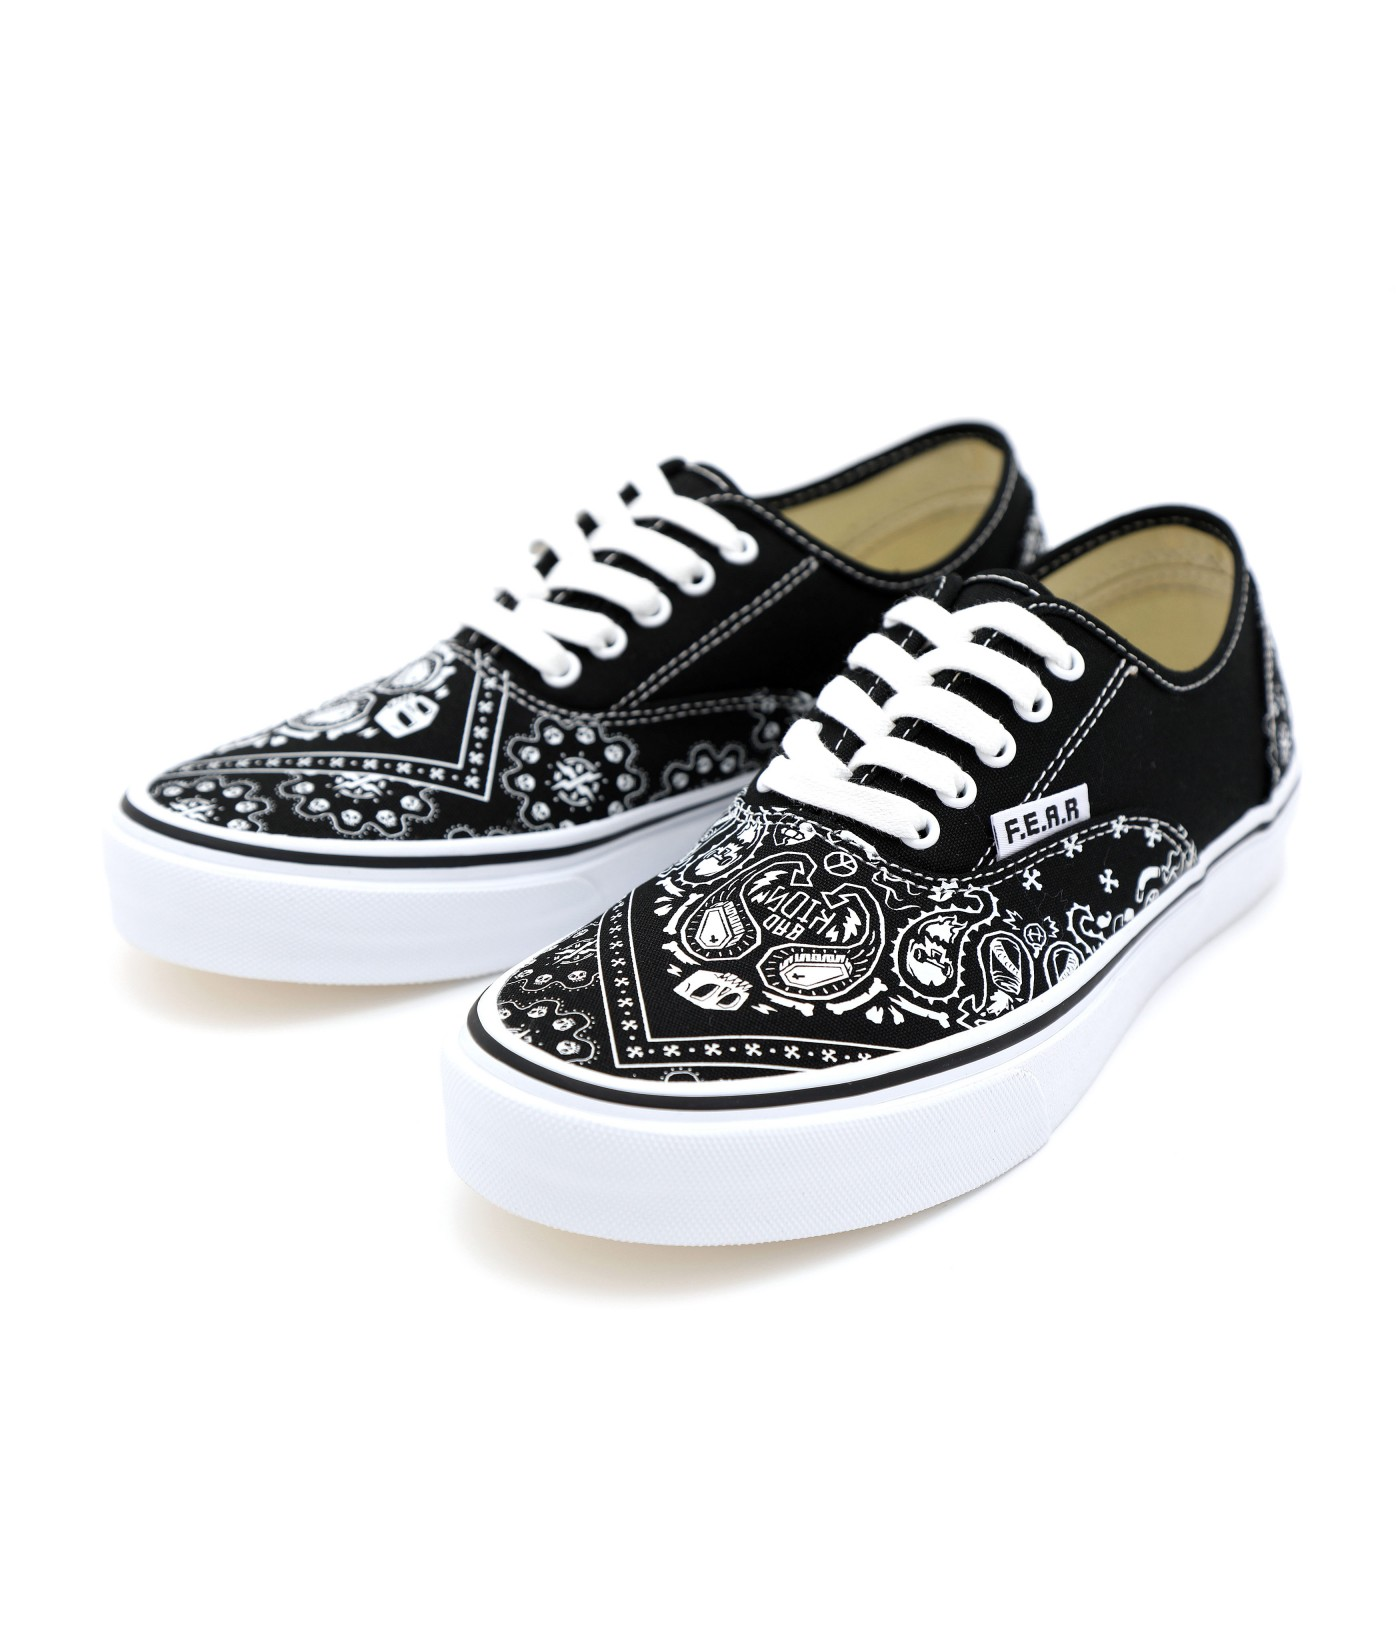 F.E.A.R BAD KIDS PAISLEY canvas shoes